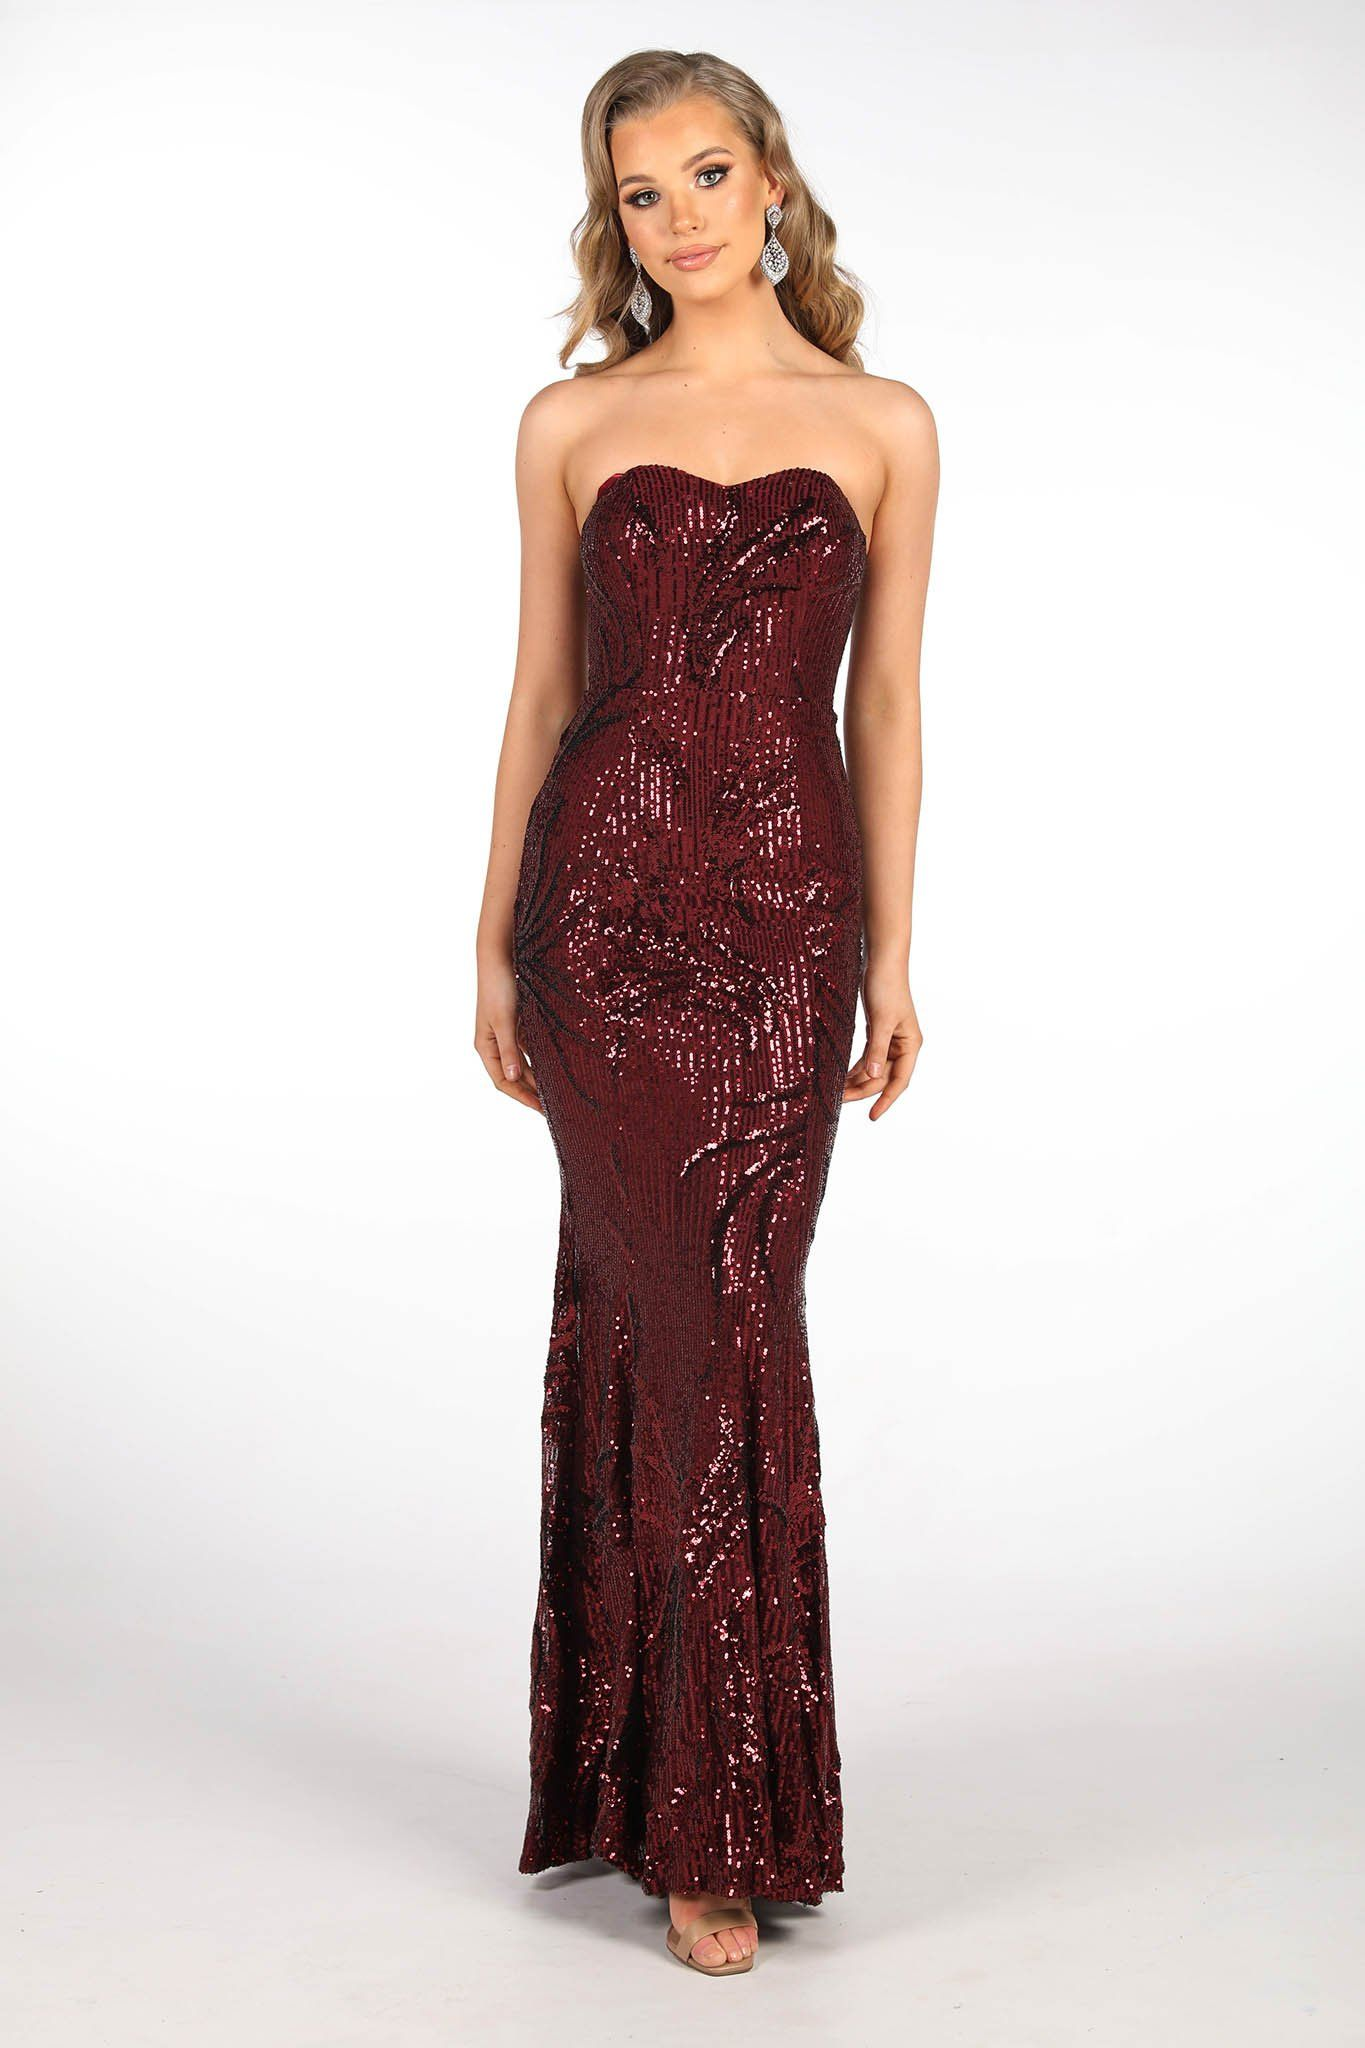 Deep Red Pattern Sequin Full Length Evening Dress featuring Strapless Sweetheart Neckline and Fit & Flare Silhouette